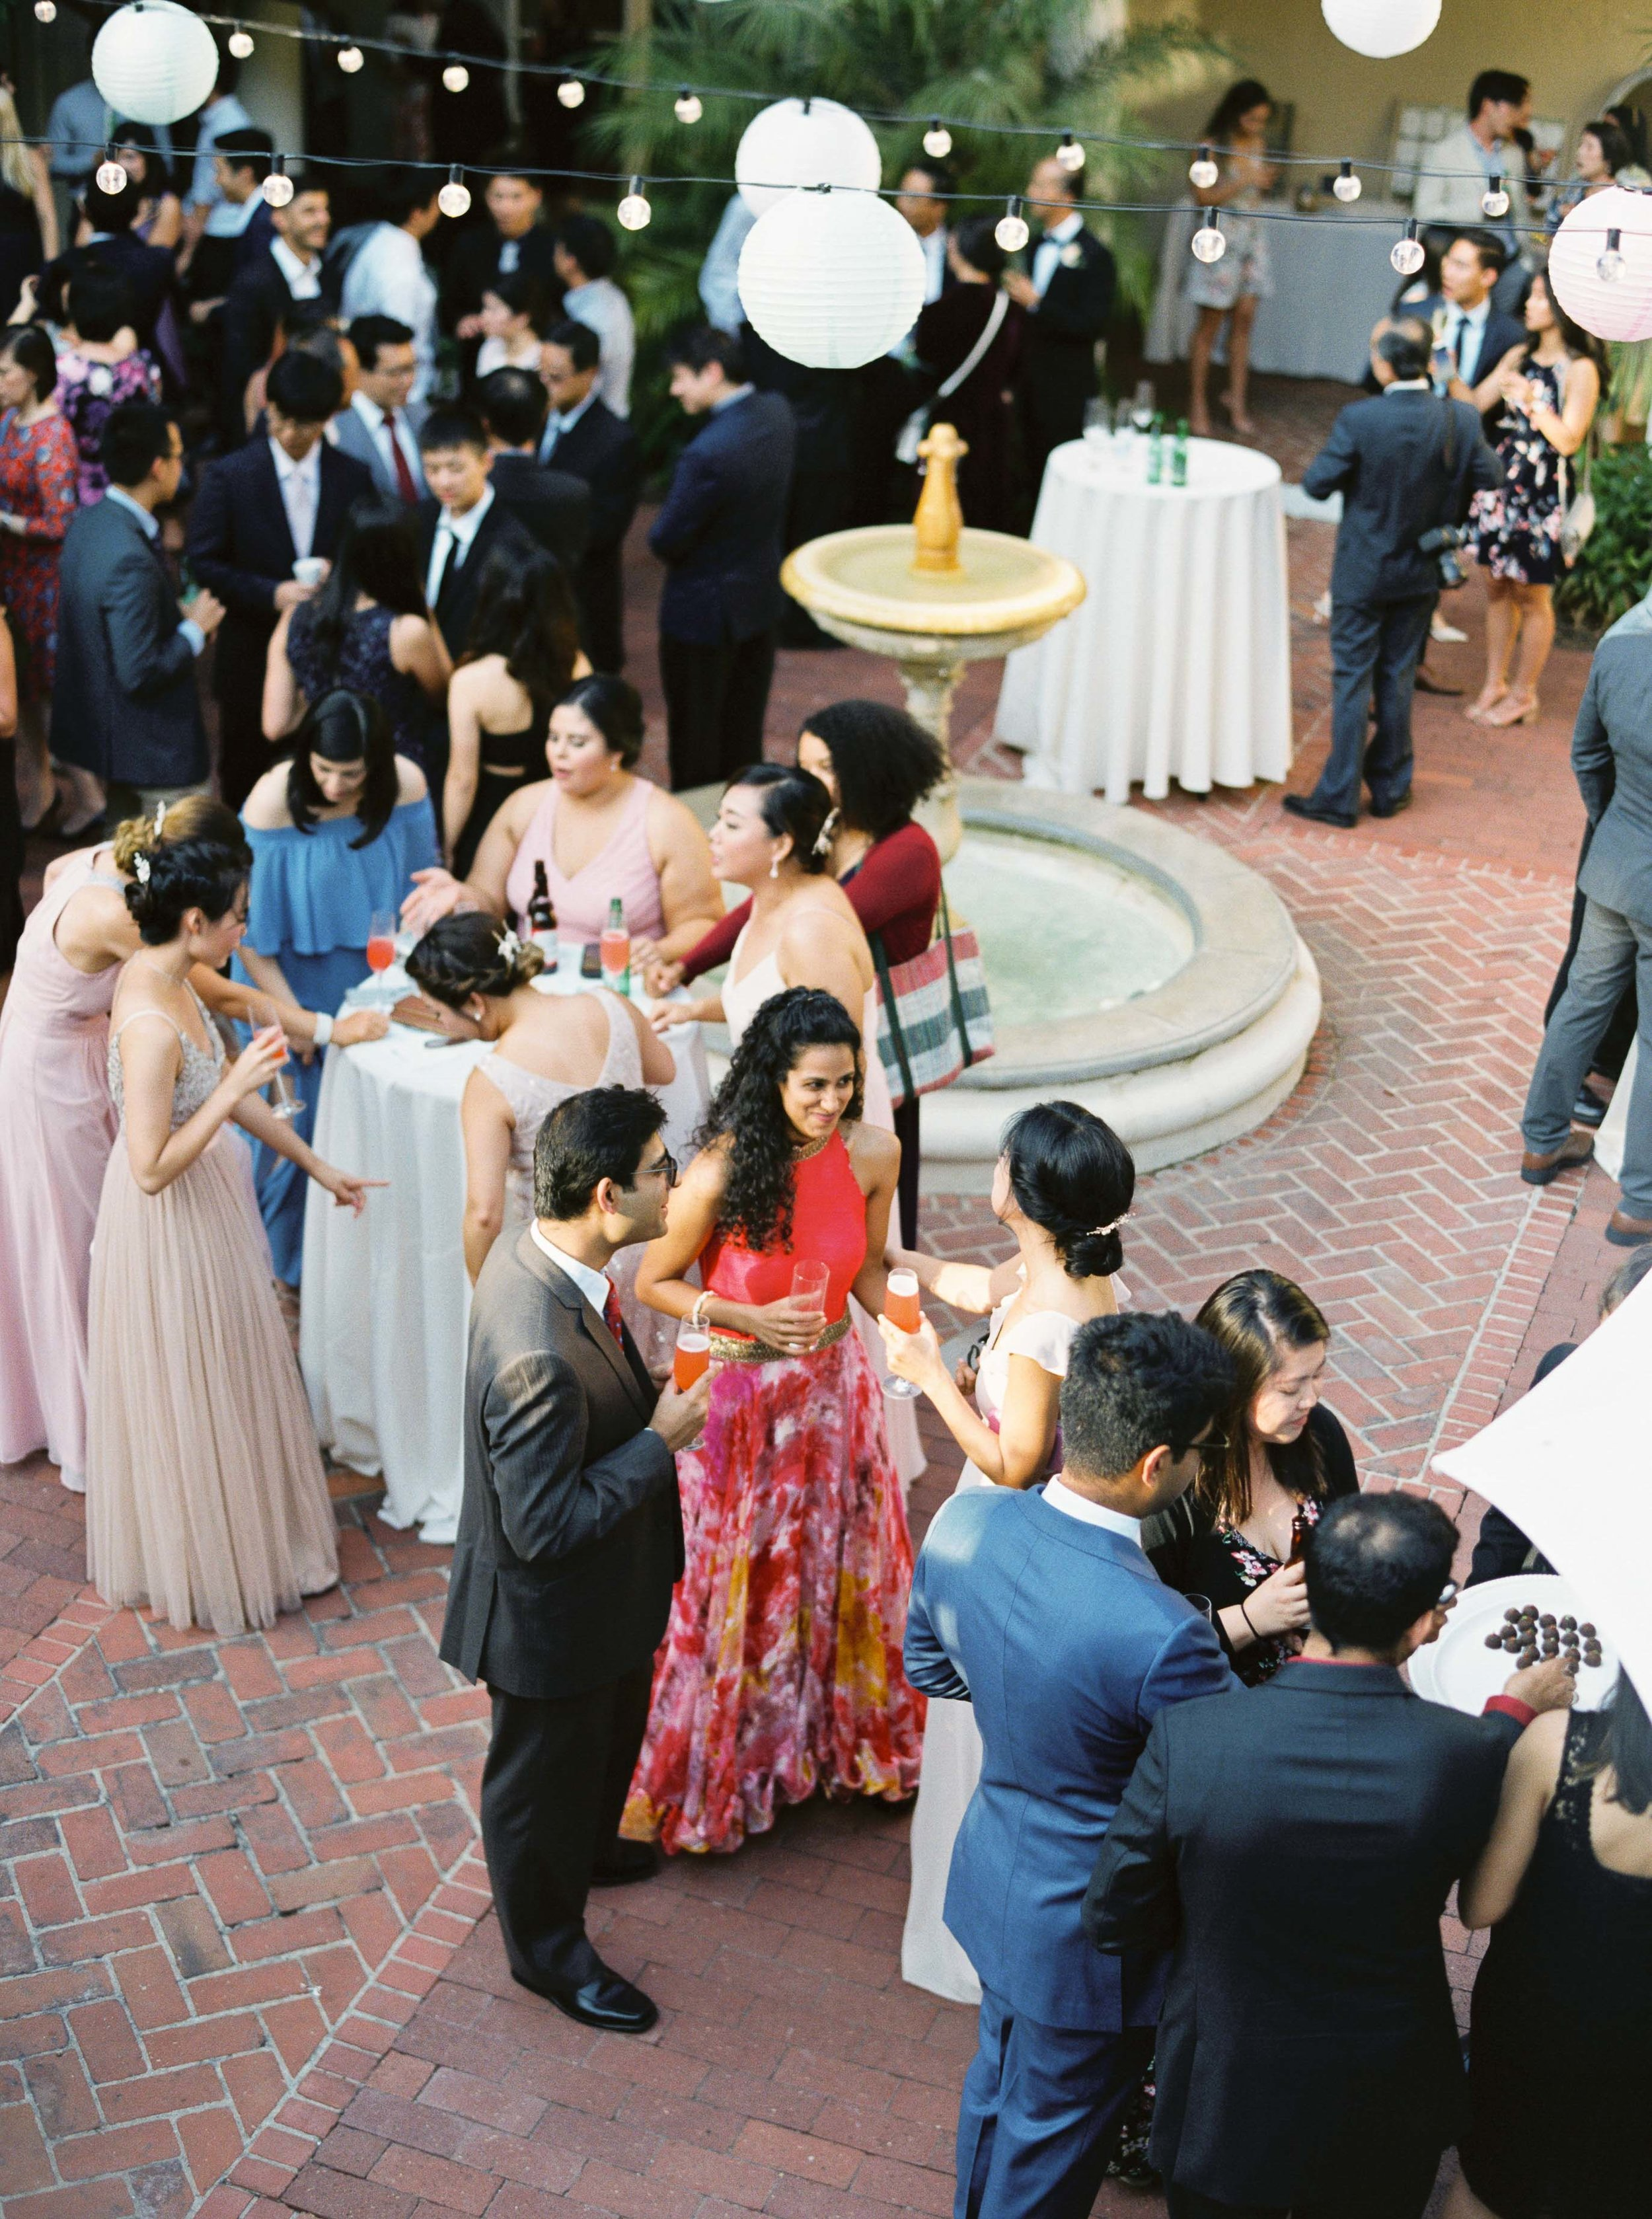 Villa_Montalvo_Wedding_Photographer_Videographer_San_Francisco109.jpg